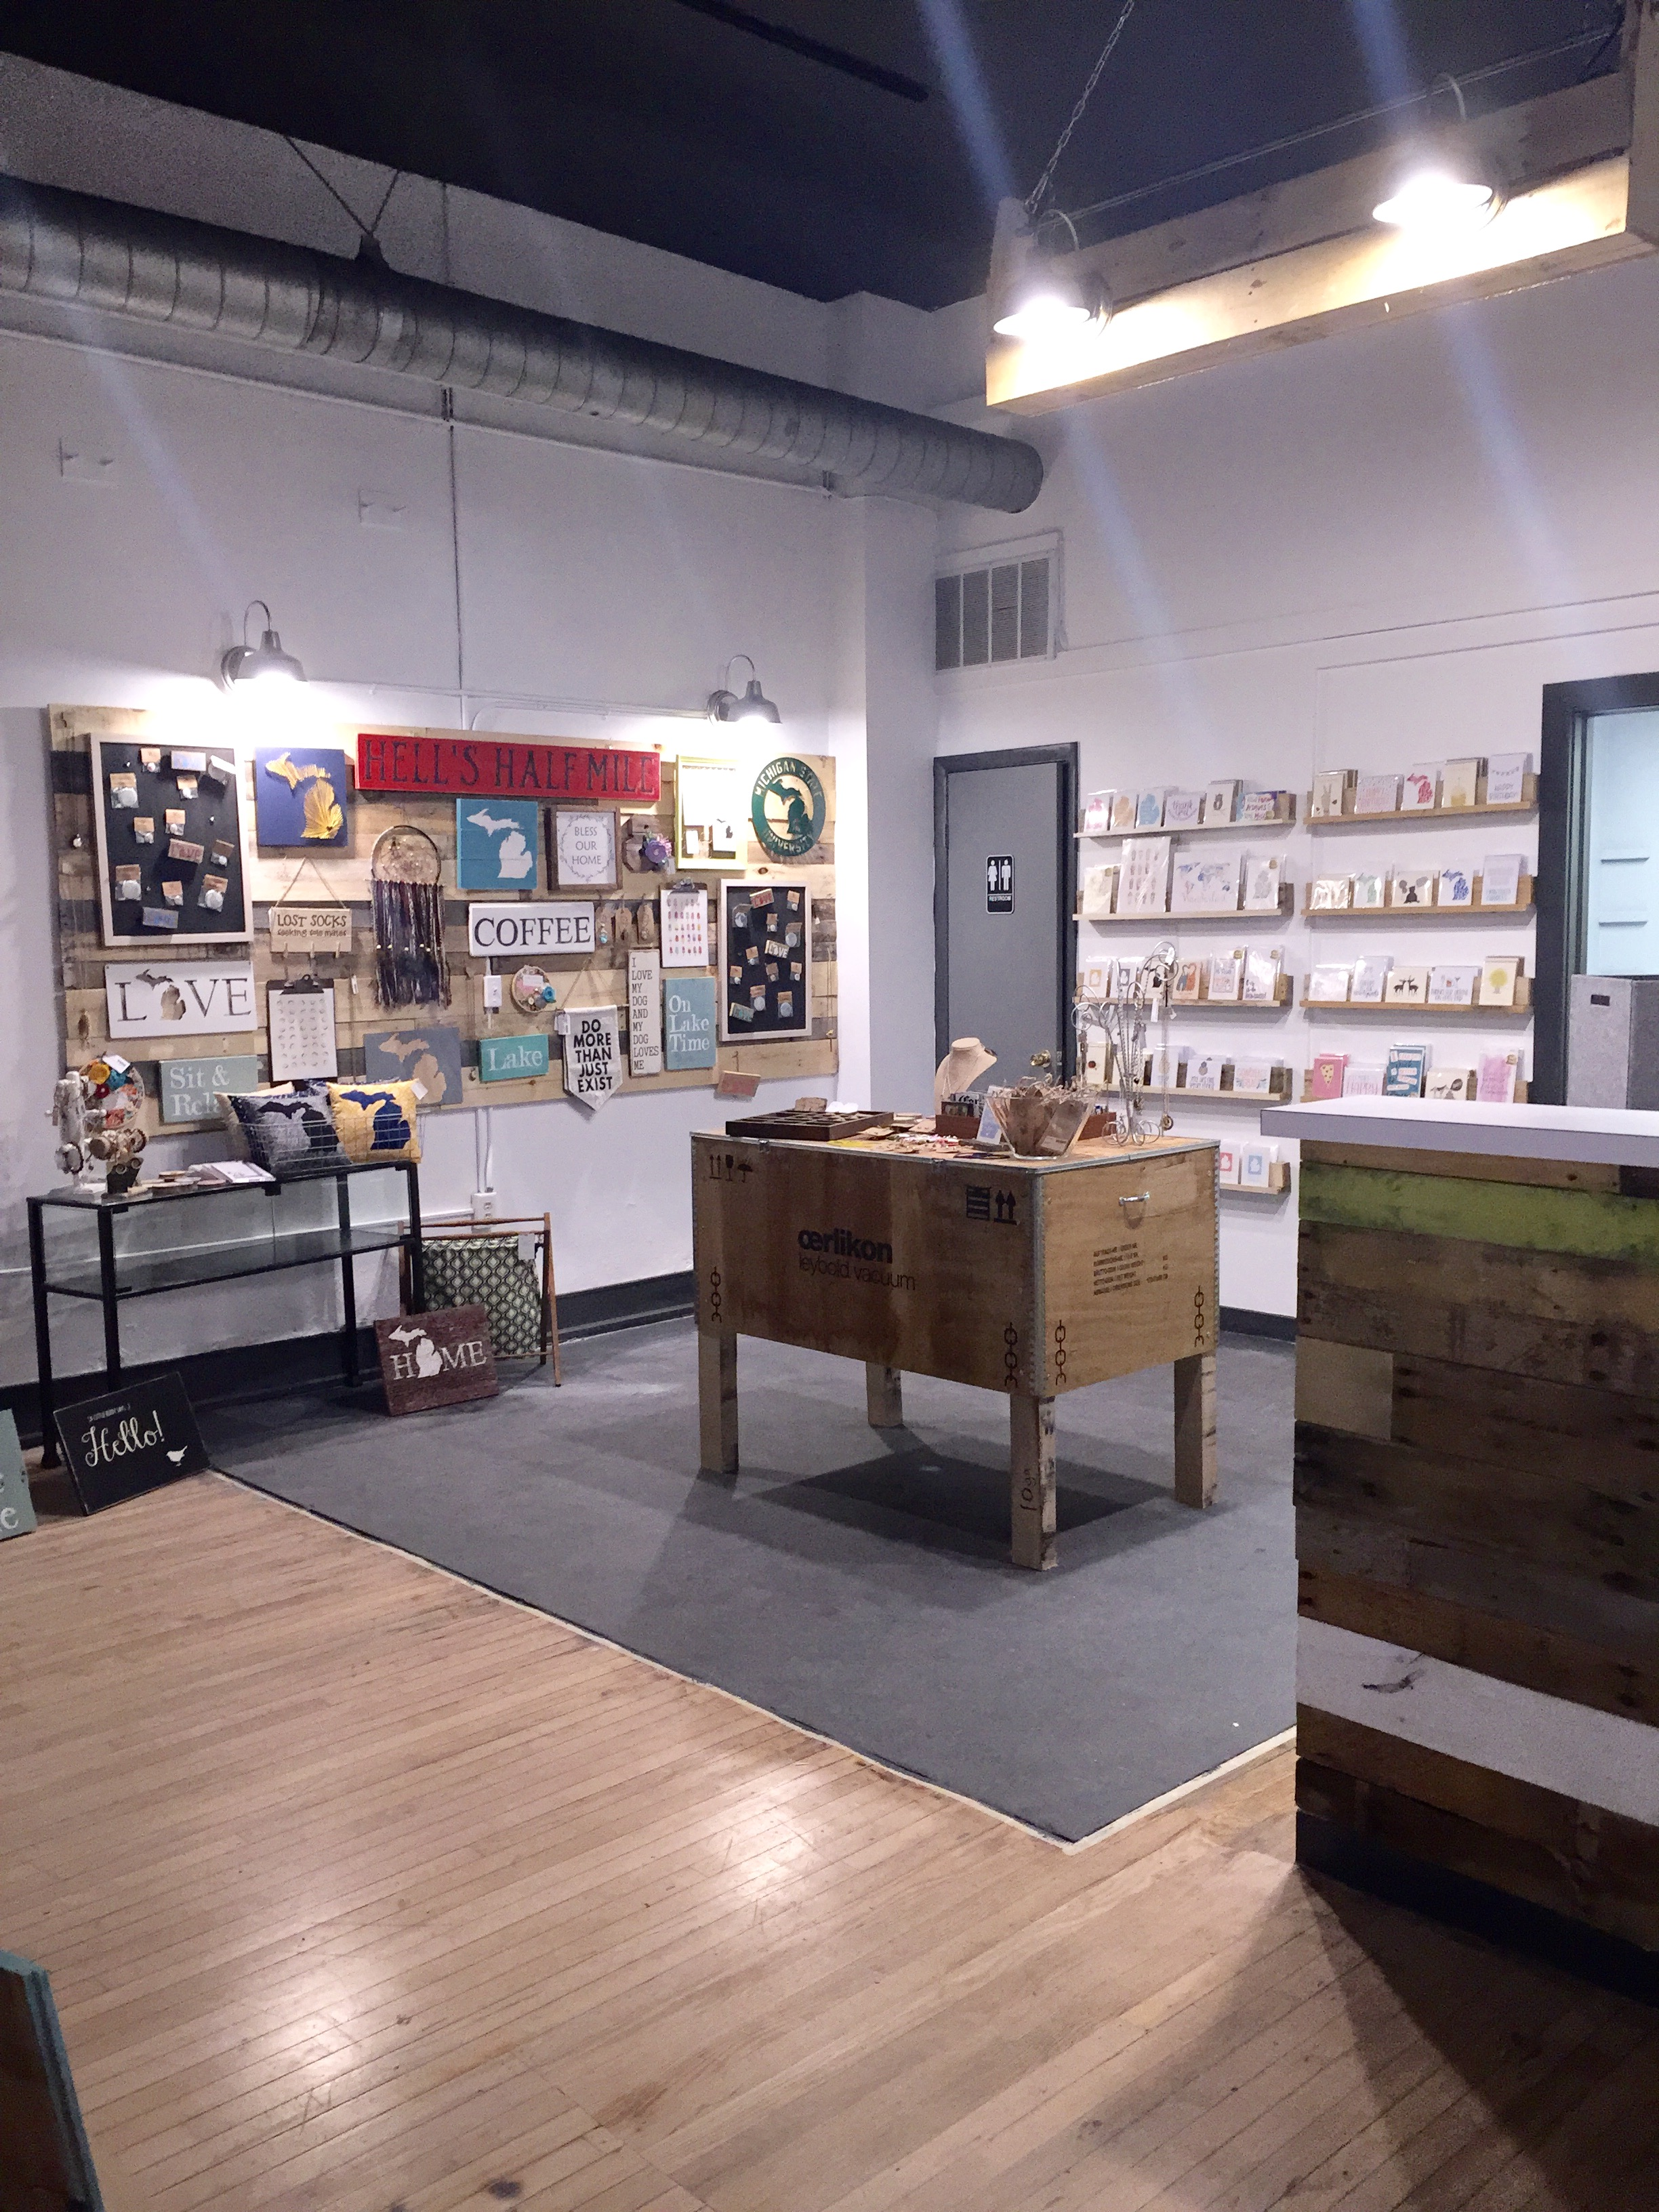 The back corner of the store all complete! Some of the notable things: the cash wrap covered in pallet wood, the perfect card wall, and the table in the center of the photo.